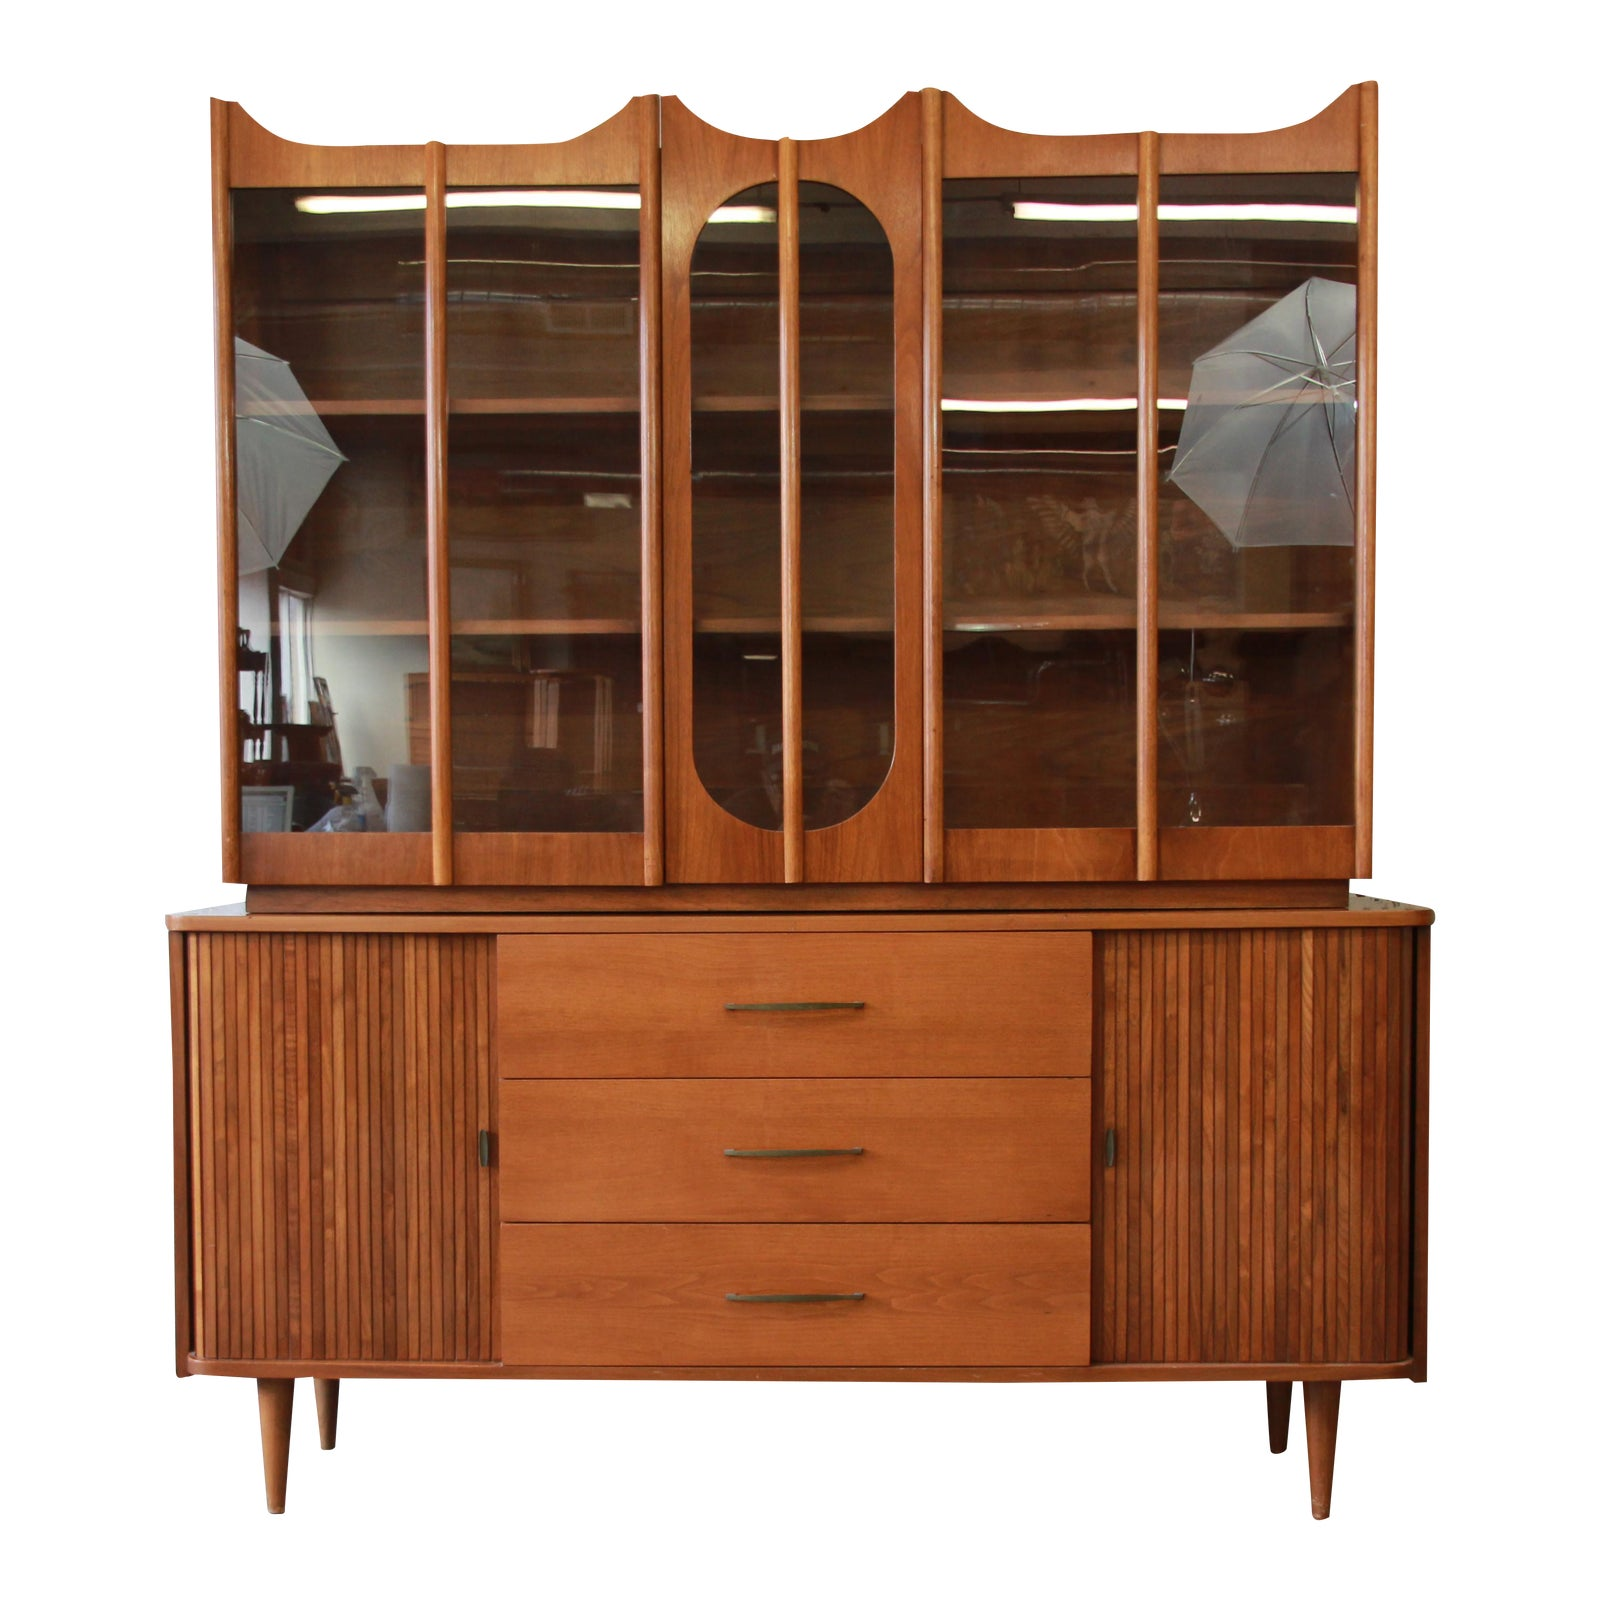 Mid Century Modern Tambour Door Sideboard Credenza With Glass Front Hutch